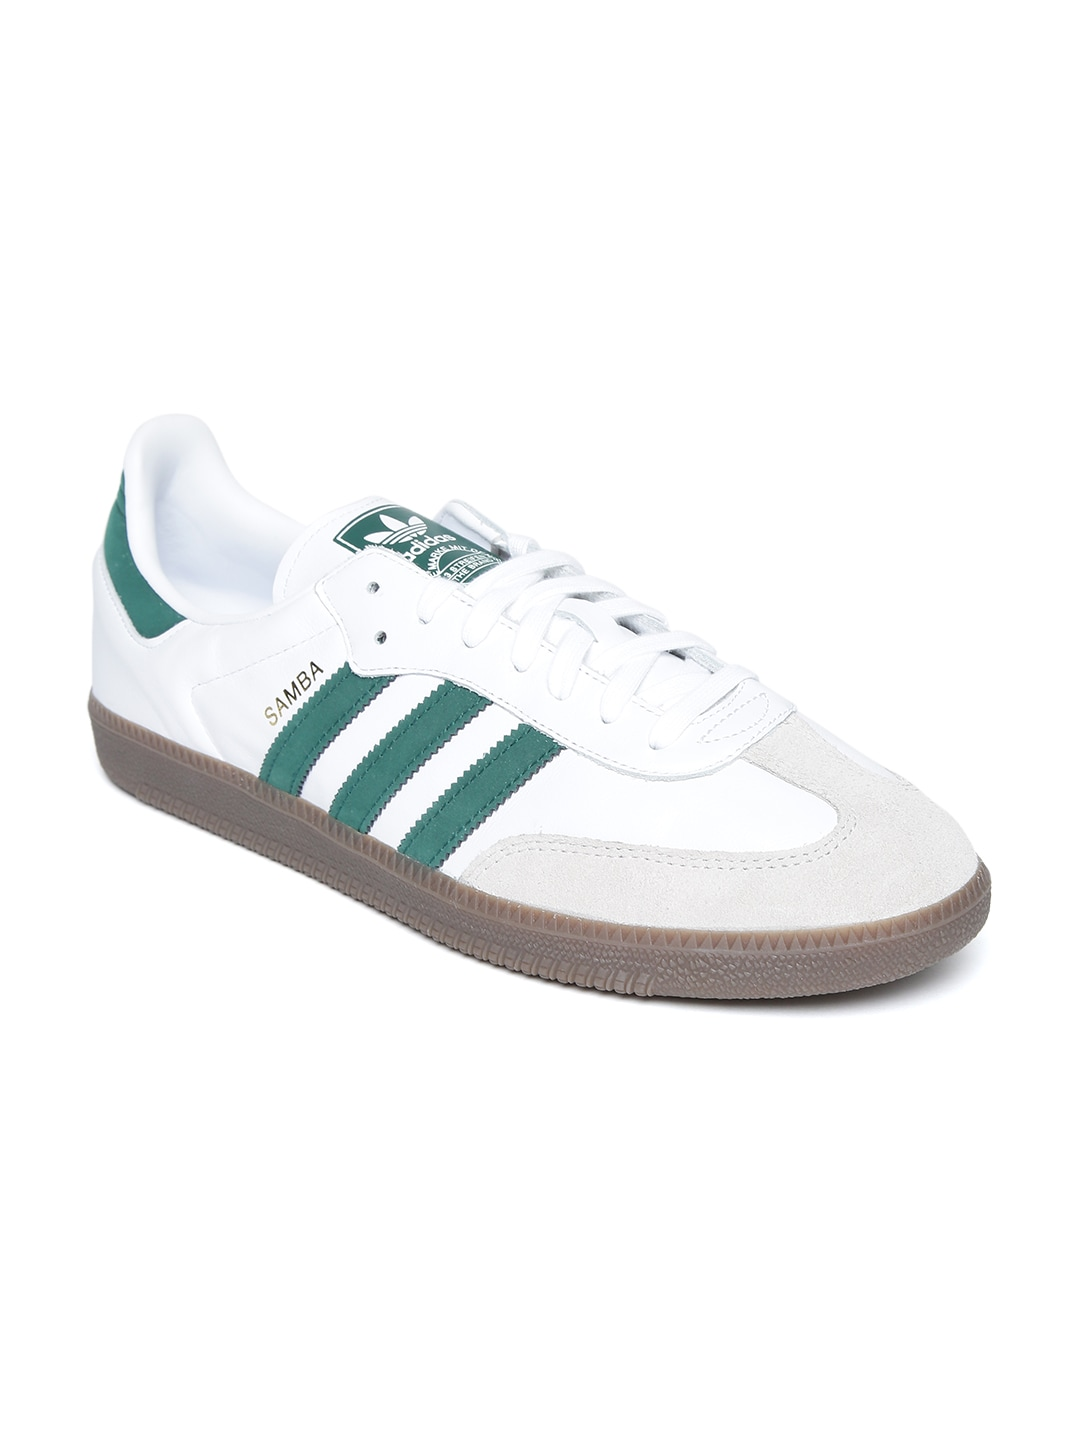 85301a78acd Adidas Samba Shoes - Buy Adidas Samba Shoes online in India